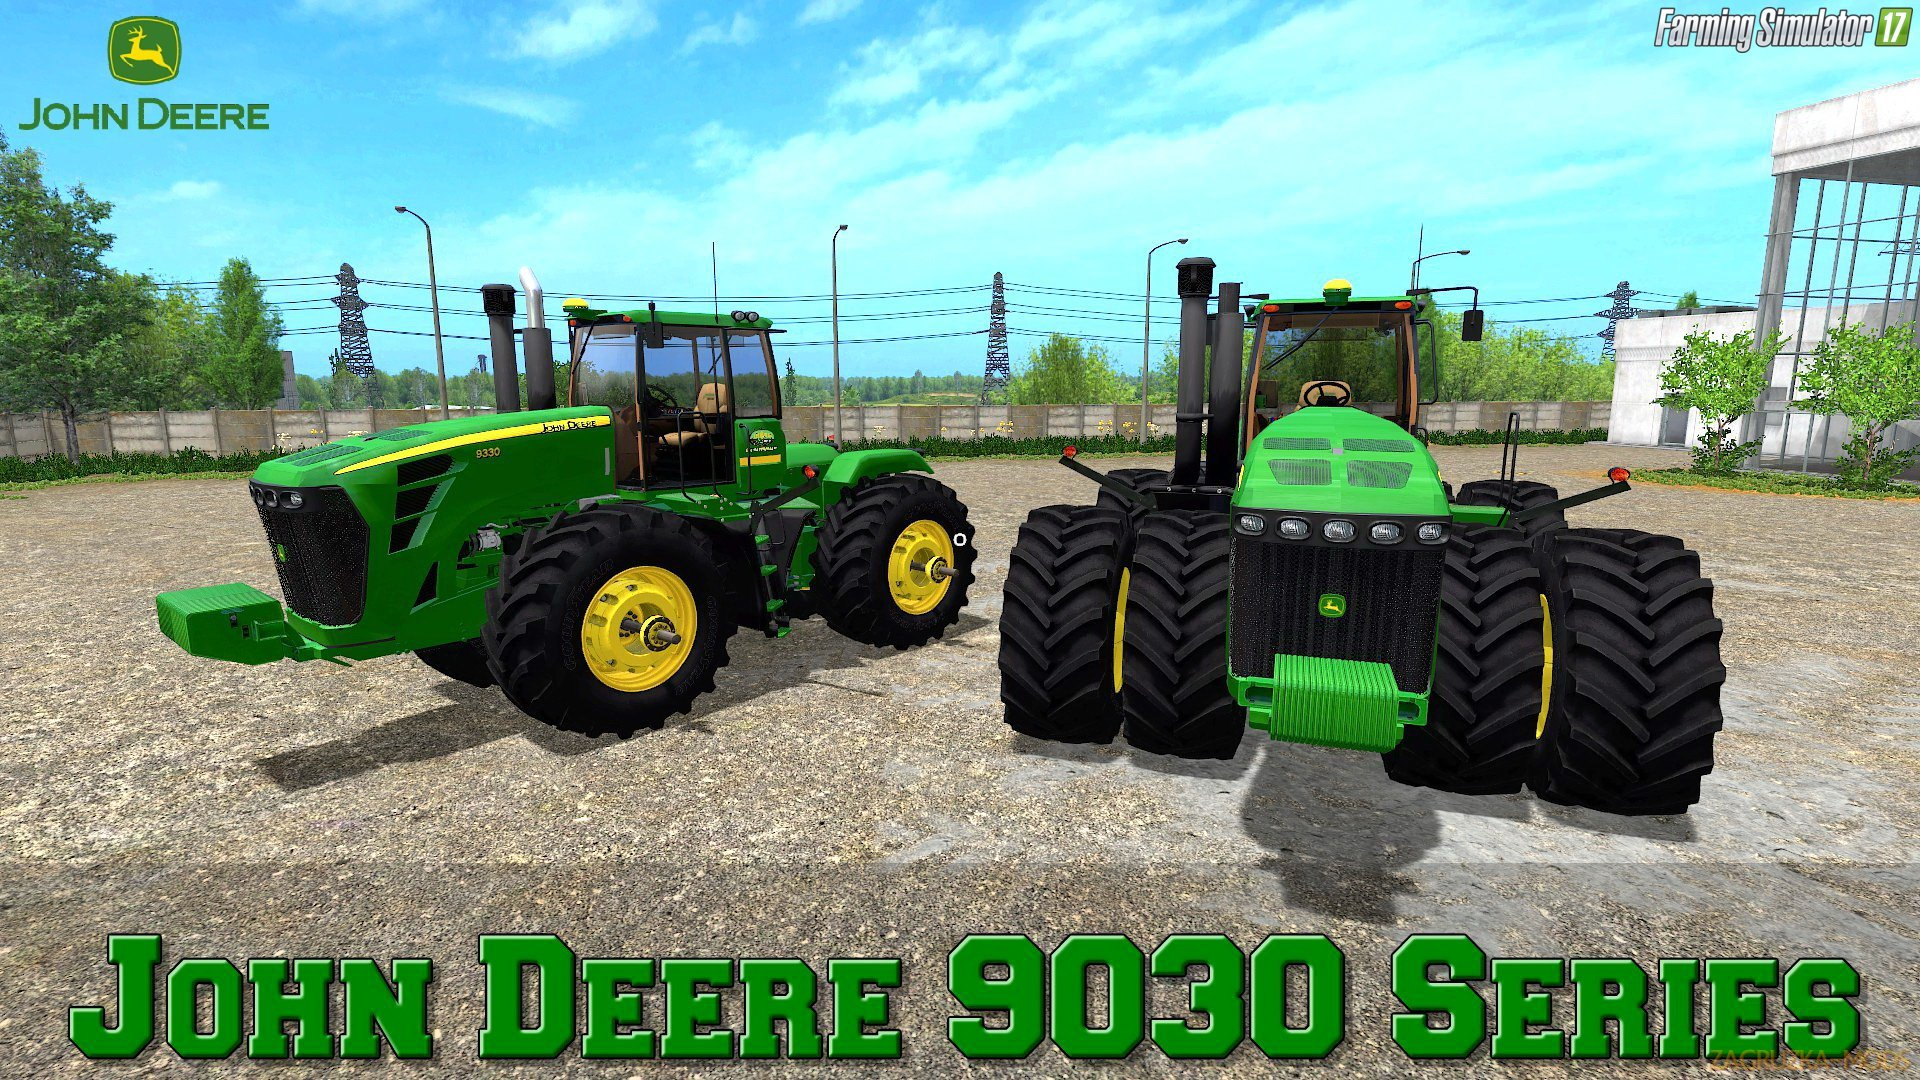 John Deere 9030 Series v1.0 by JHHG Modding for FS 17